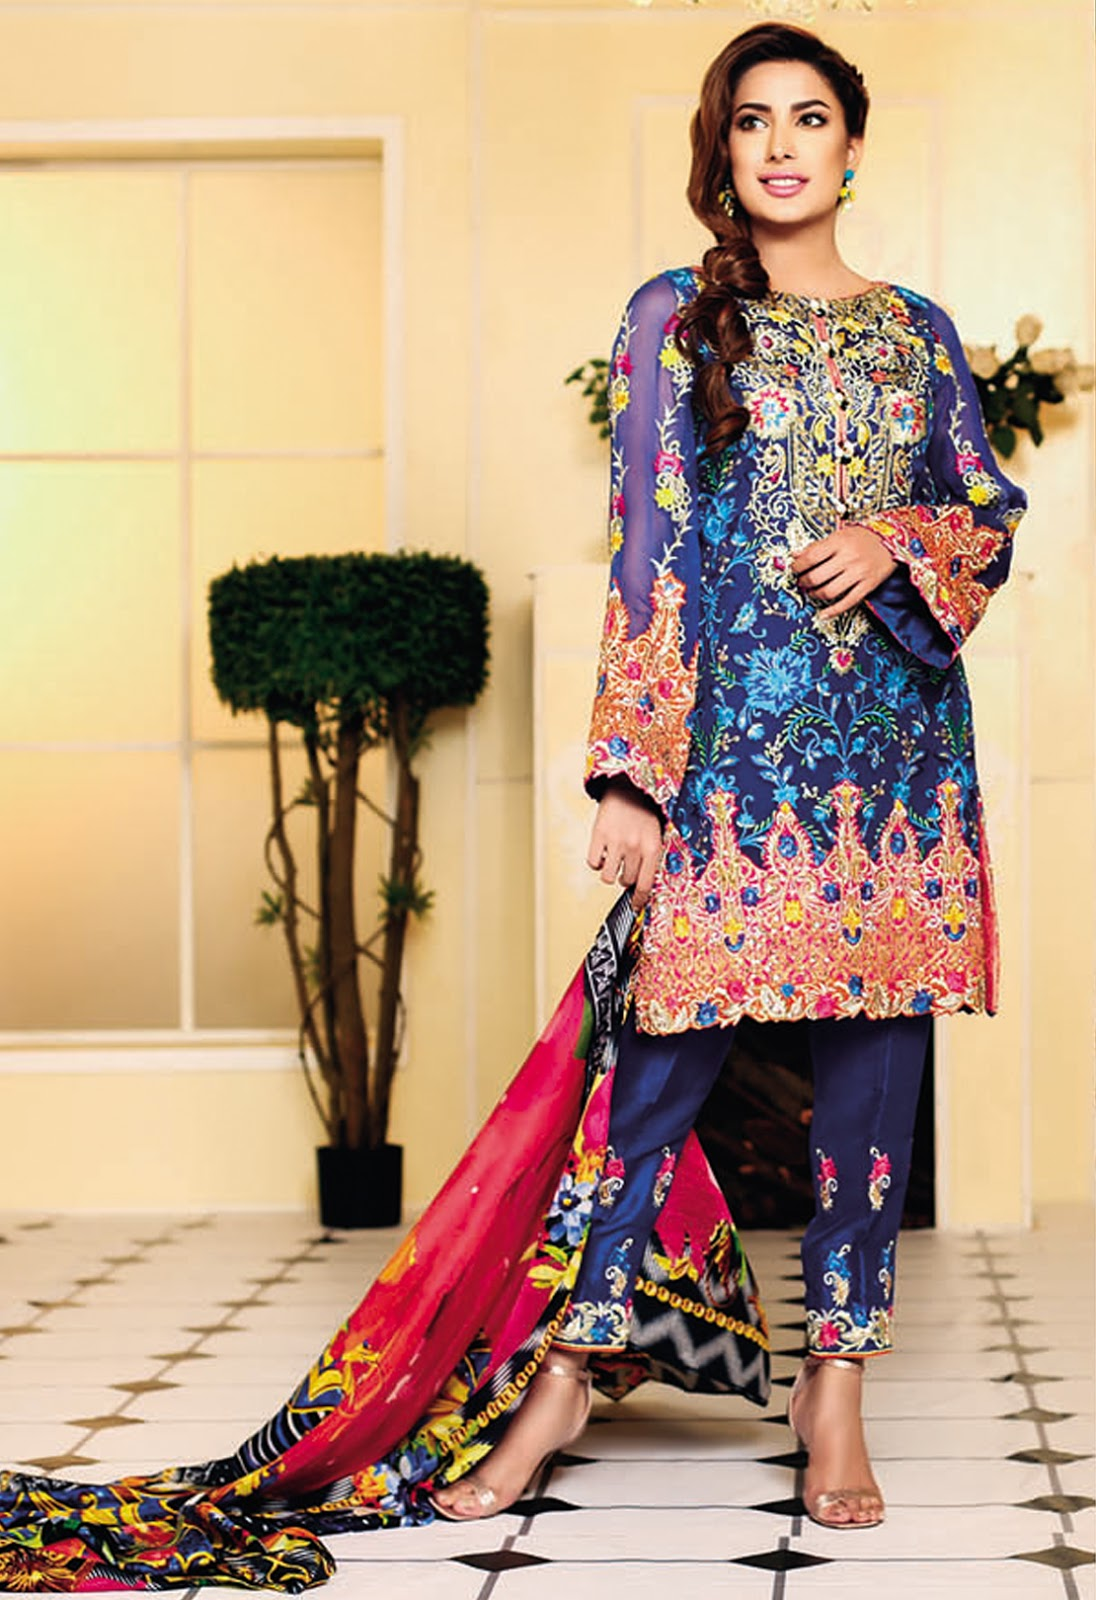 Fashion style Ansari Nomi floral lawn prints collection for lady